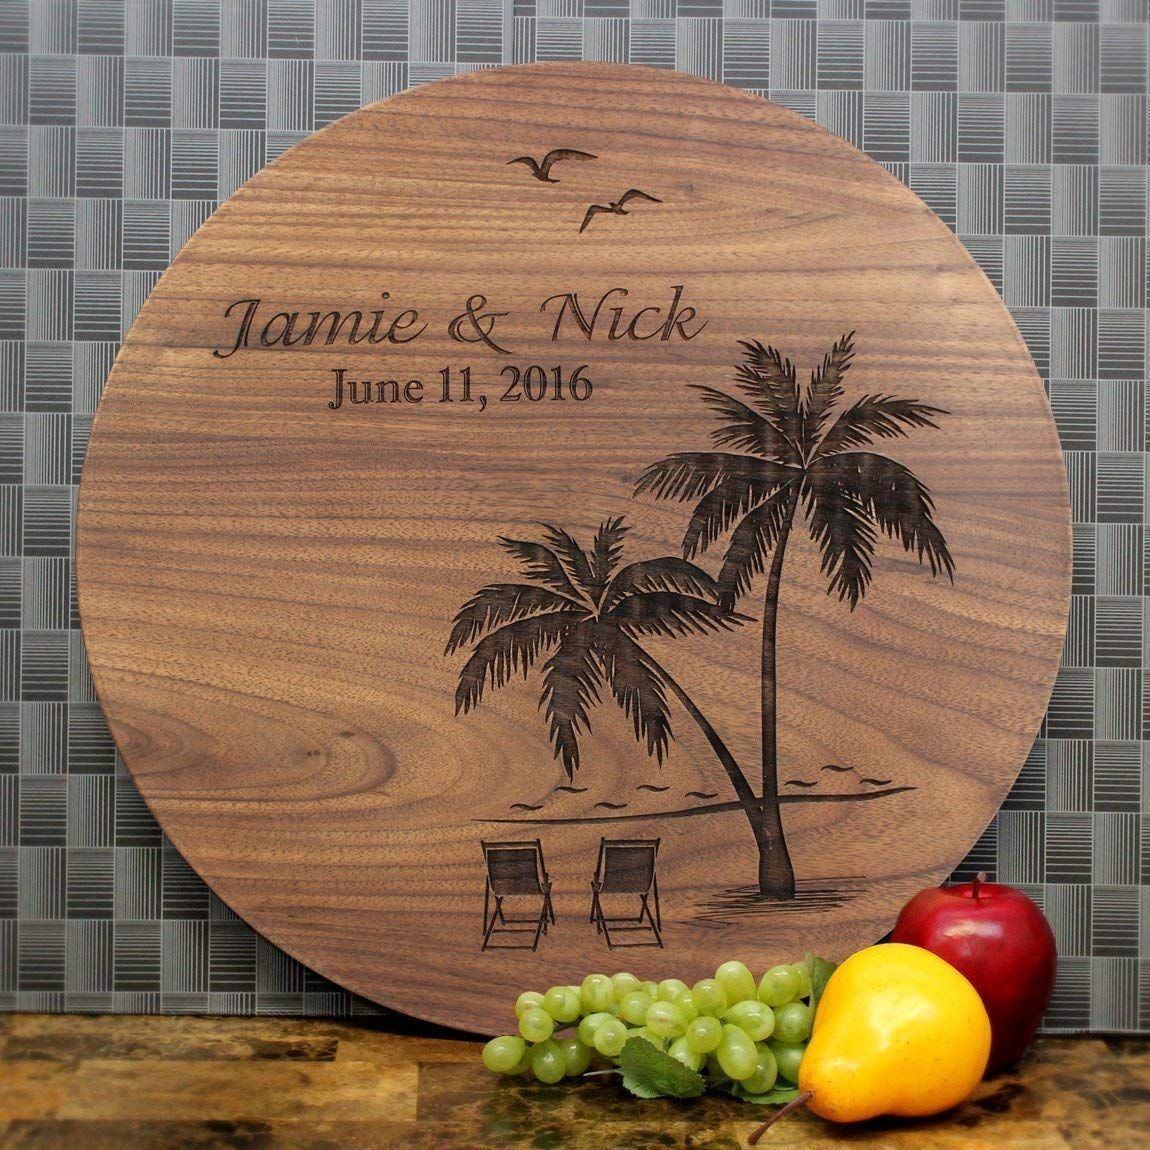 Custom Personalized Wood Sign Engagement Hardwood Sign Personalized Wedding Gift First Names Couples Gift, Destination Wedding, Bridal Shower Gift Anniversary Gift, Beach, Palm Trees. #409